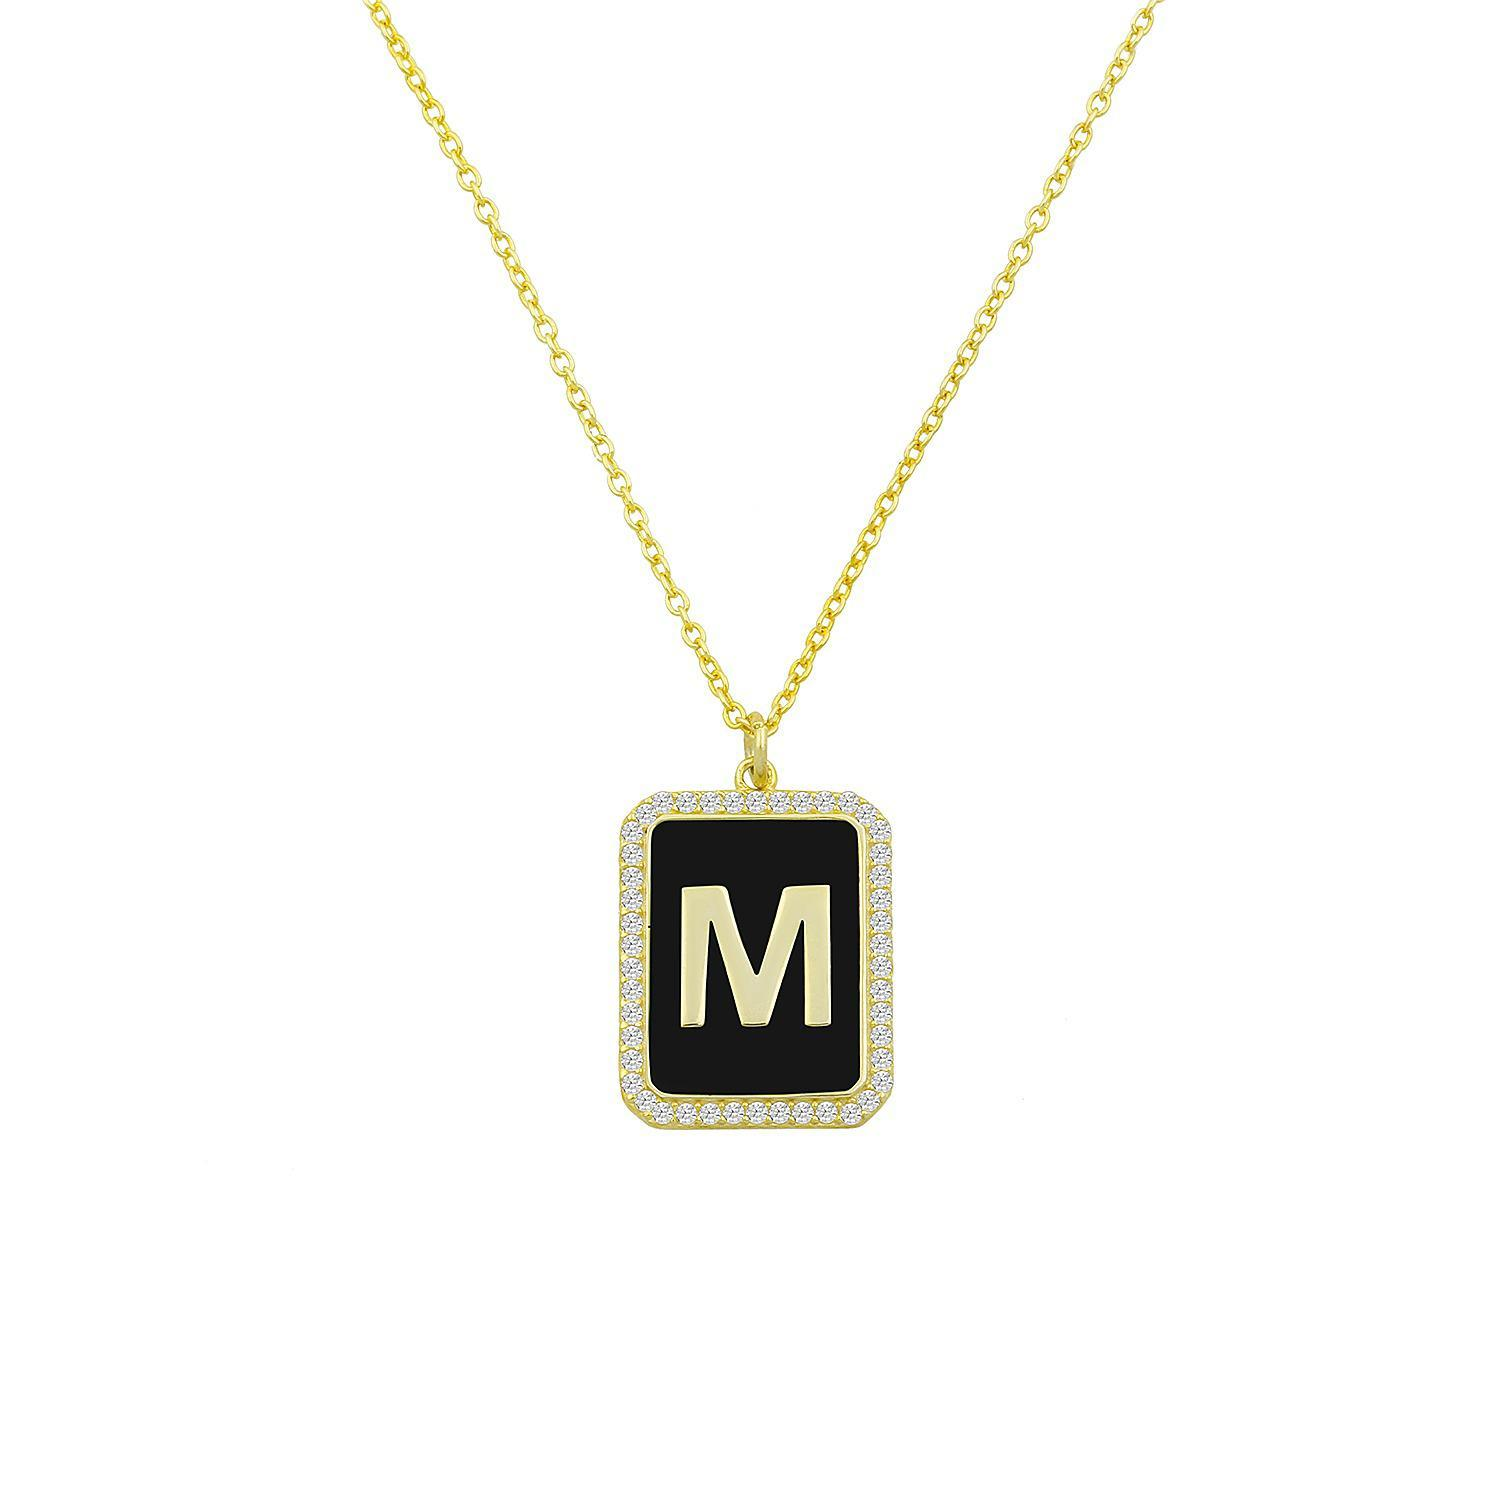 Square Pendant Initial Necklace in Black & Gold